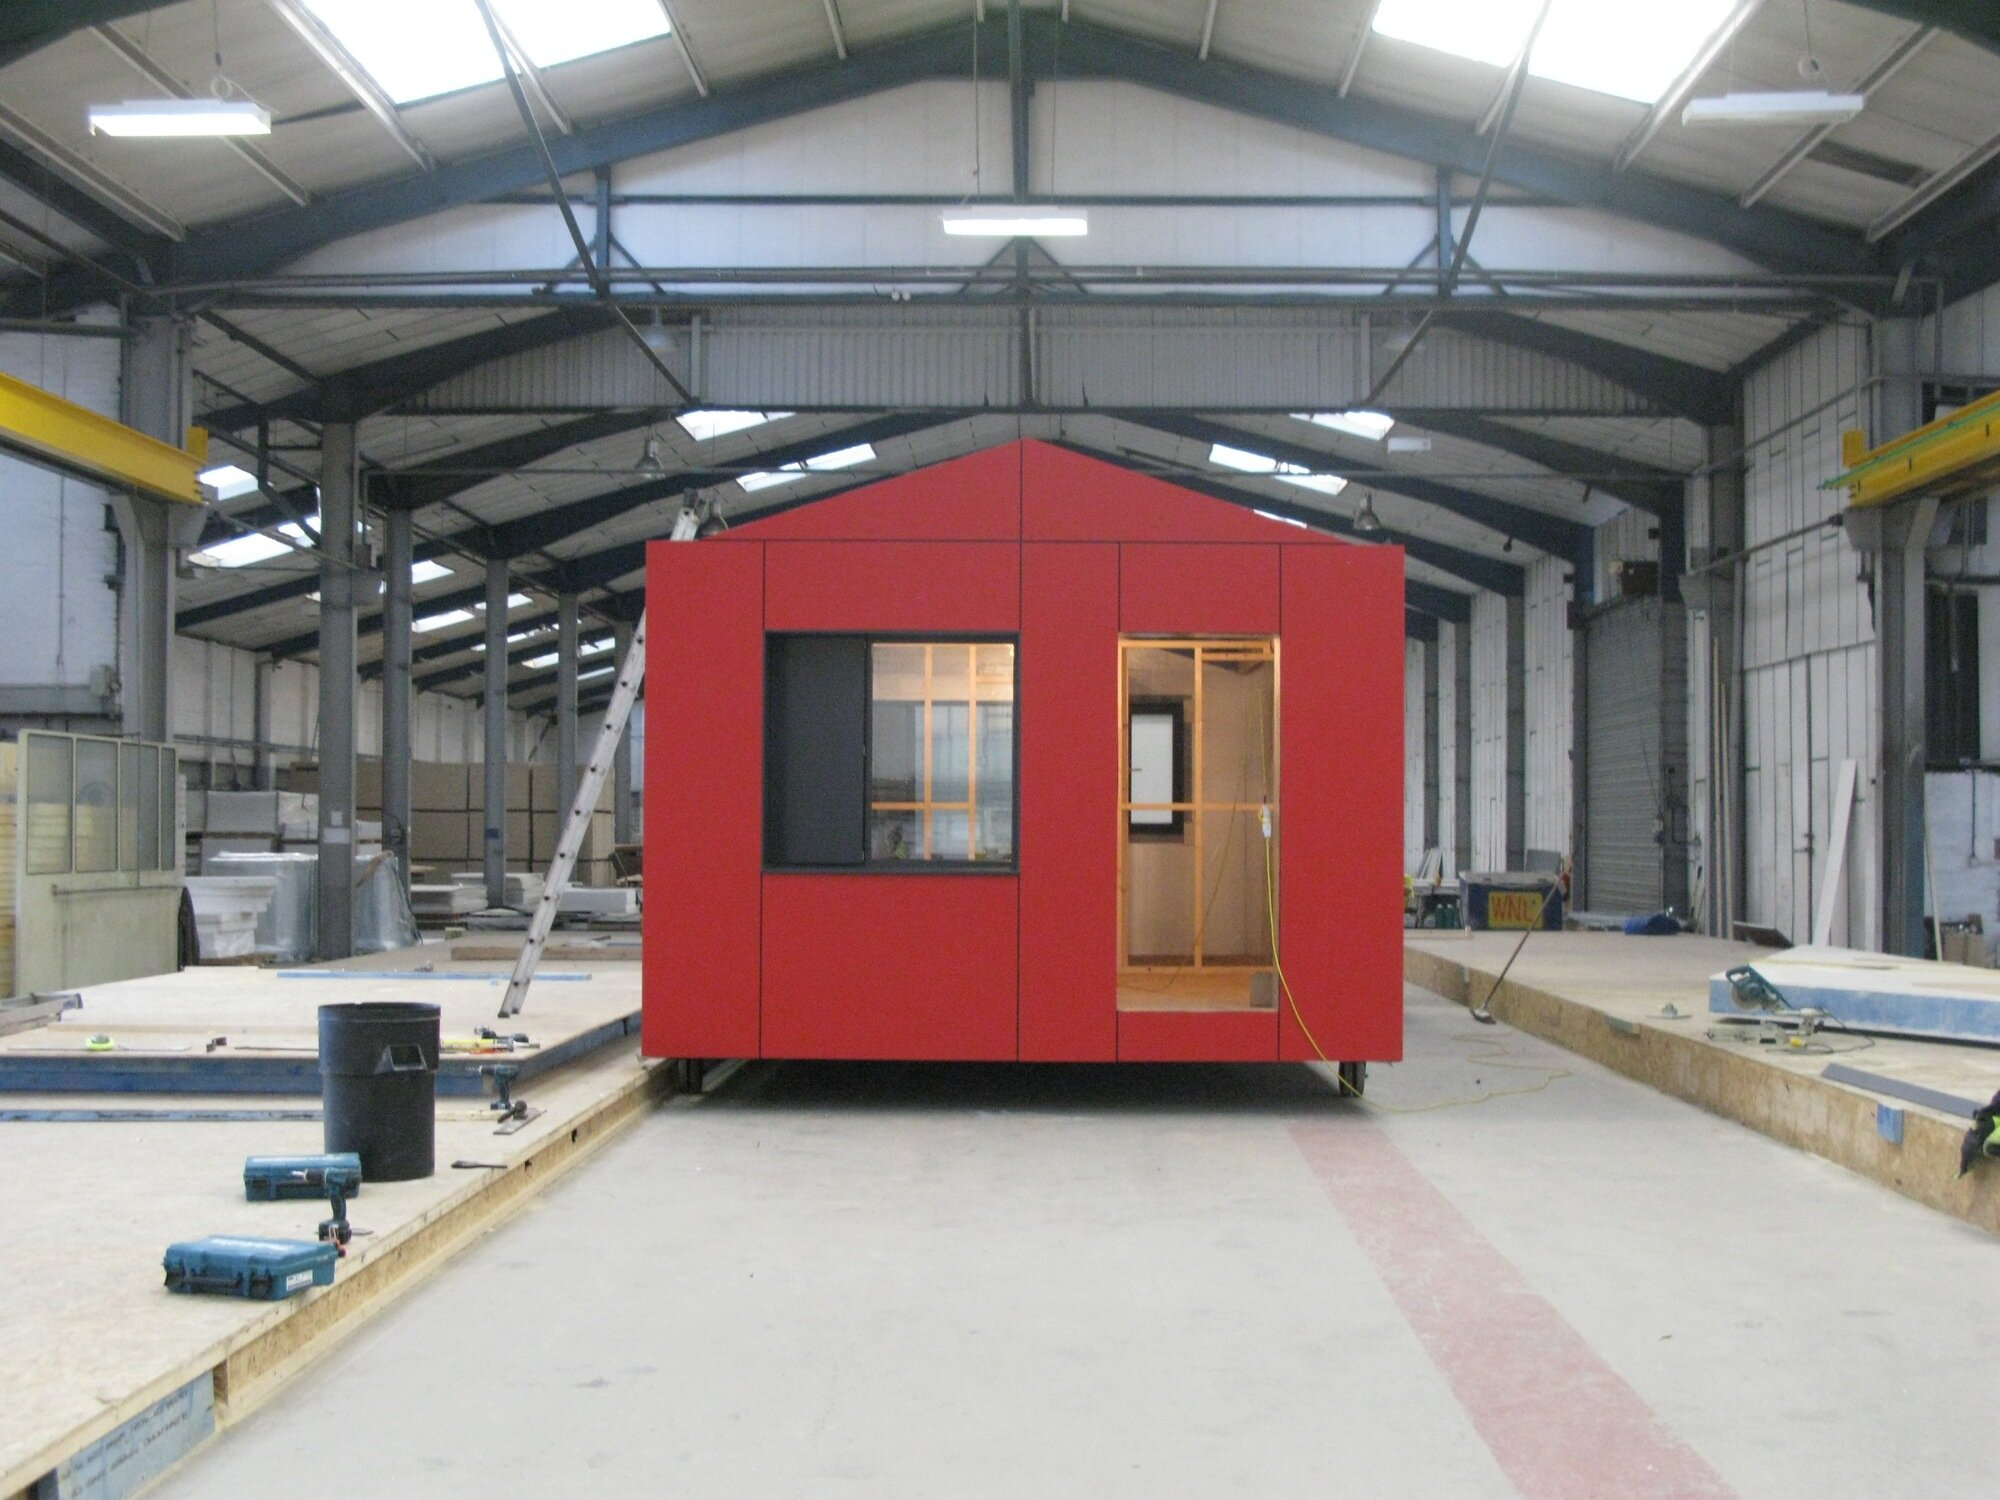 Tiny Houses Prefab ViVood Prefab Tiny House Assembles In One Day ...